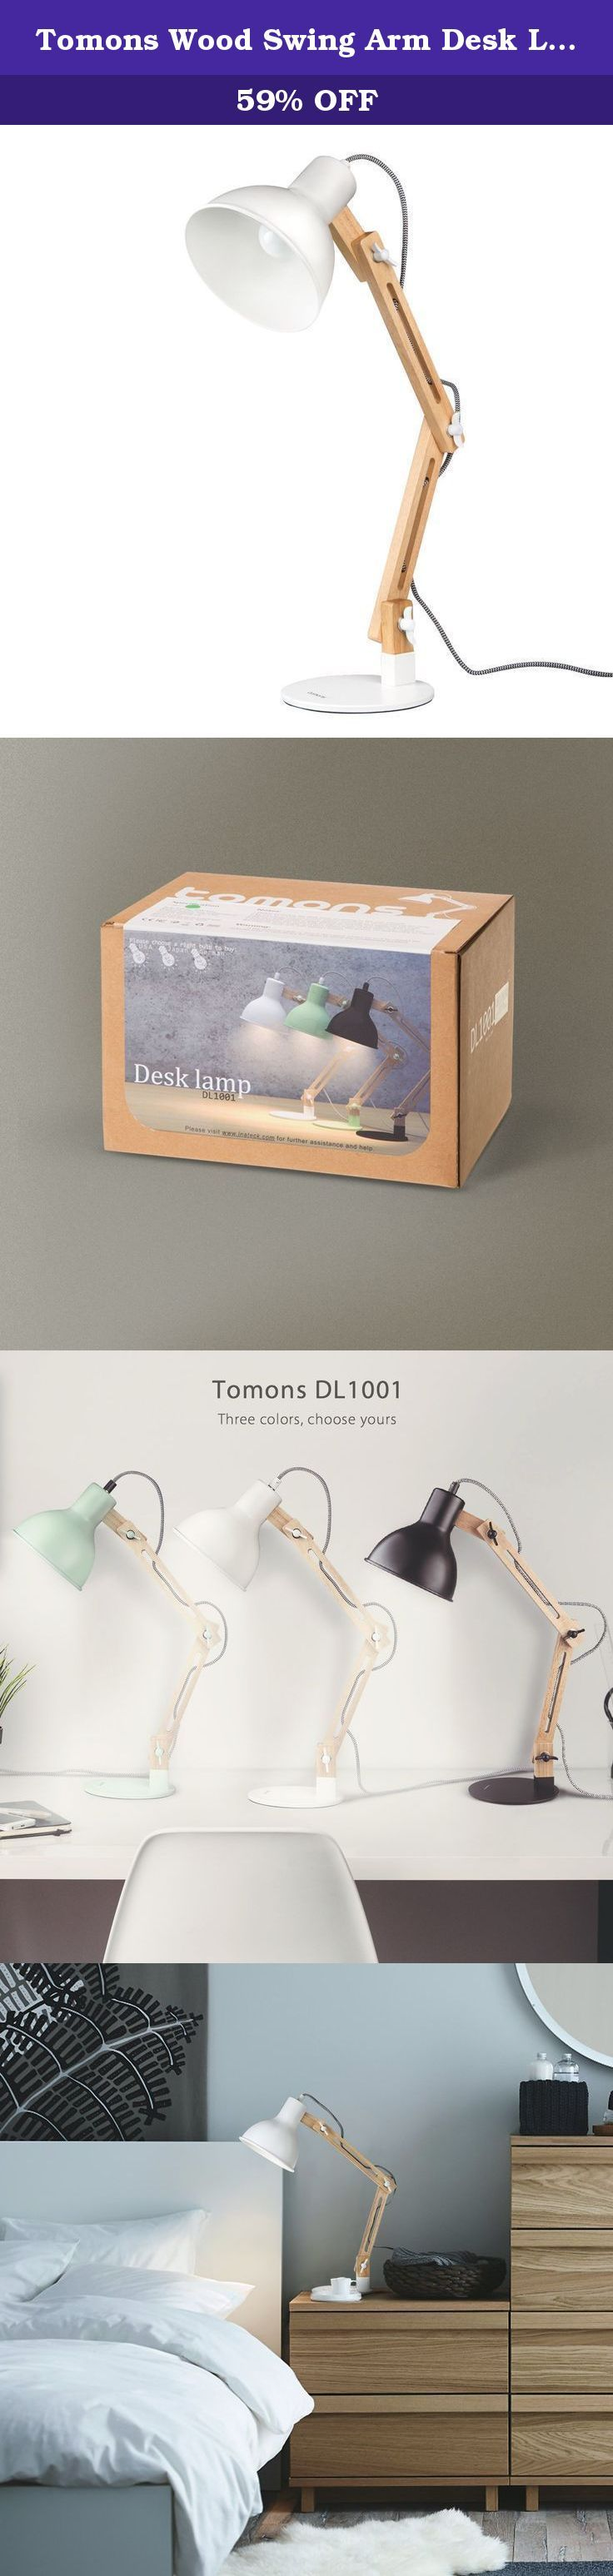 "Tomons Wood Swing Arm Desk Lamp, Designer Table Lamp, Reading Lights, Study Lamp, Work Lamp, Office Lamp, Bedside Nightstand Lamp - White. Versatile applications May it be as a light source for your desk or as reading lamp on your nightstand - the Tomons desk lamp does not simply provide illumination, but features a modern and timeless design as well. The lamp improves your home environment, while being a functional desk lamp for your office environment at the same time. ""Scandinavian""..."